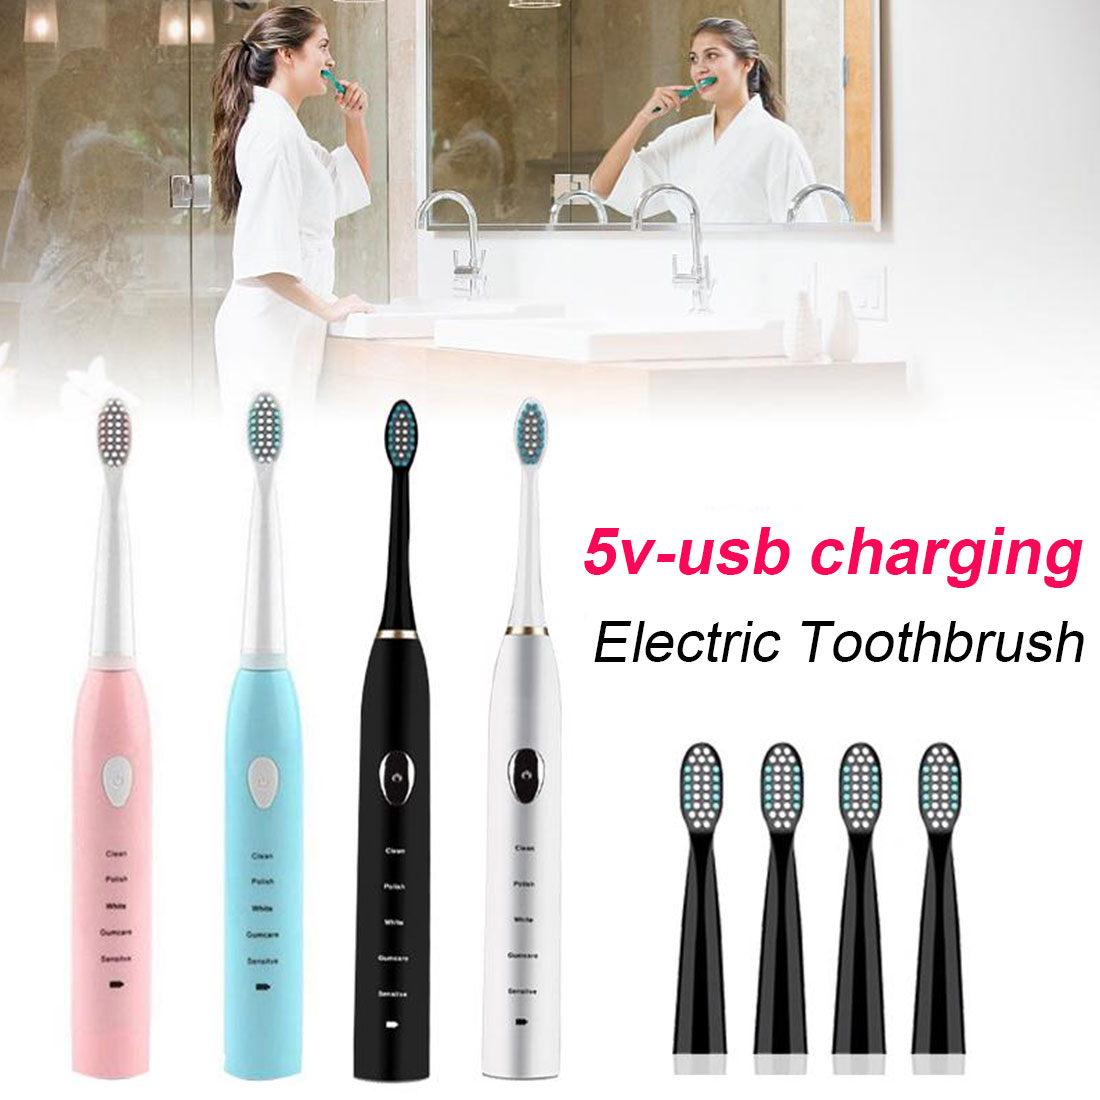 Ultrasonic for Sonic Electric Toothbrush USB Rechargeable Tooth Brush set IPX-7 Washable Whitening Teeth Brush Adult Timer